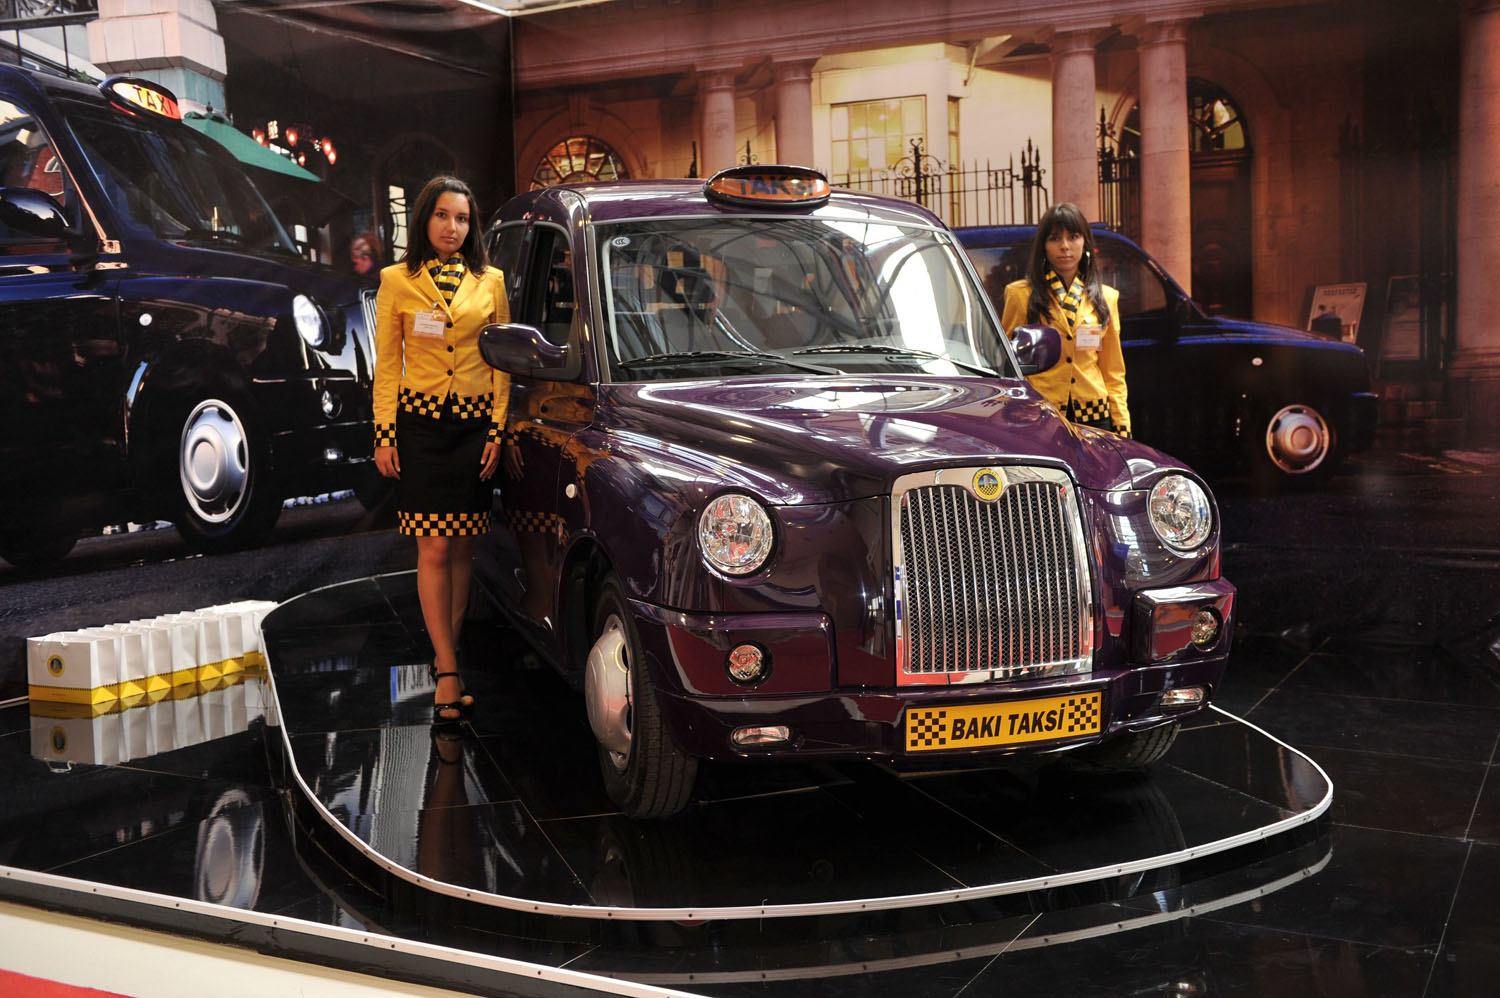 London Taxi Is Main Attraction At Azerbaijan Public